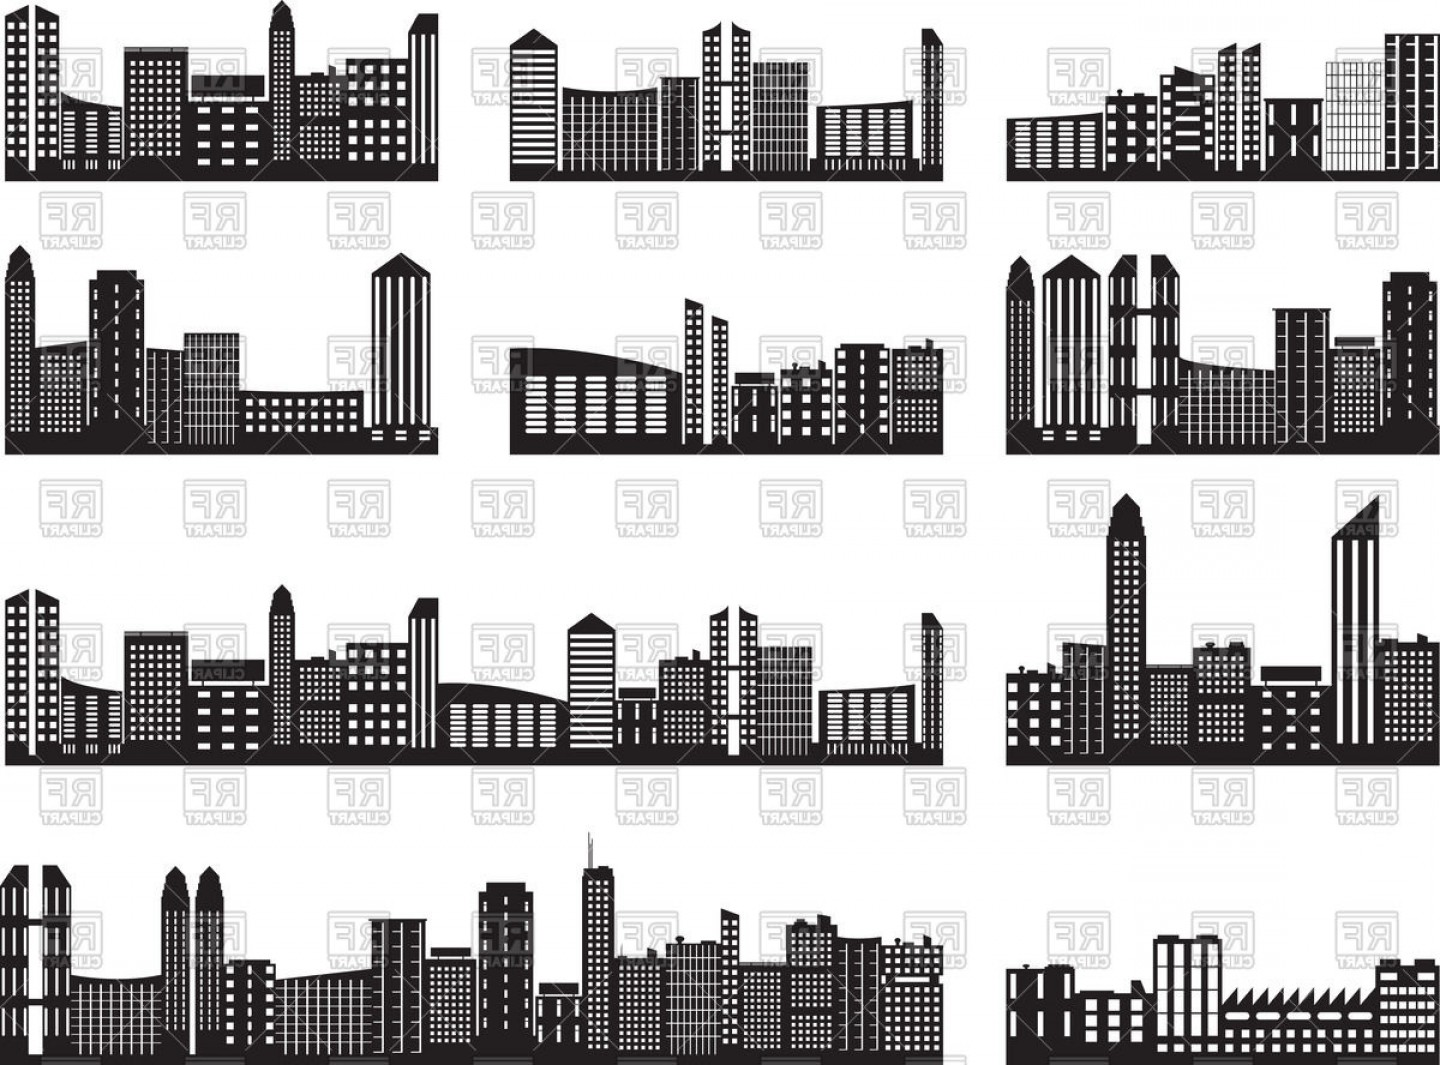 City Building Vector Free Download: Cityscape Silhouette Modern City Skyline With Skyscrapers Vector Clipart